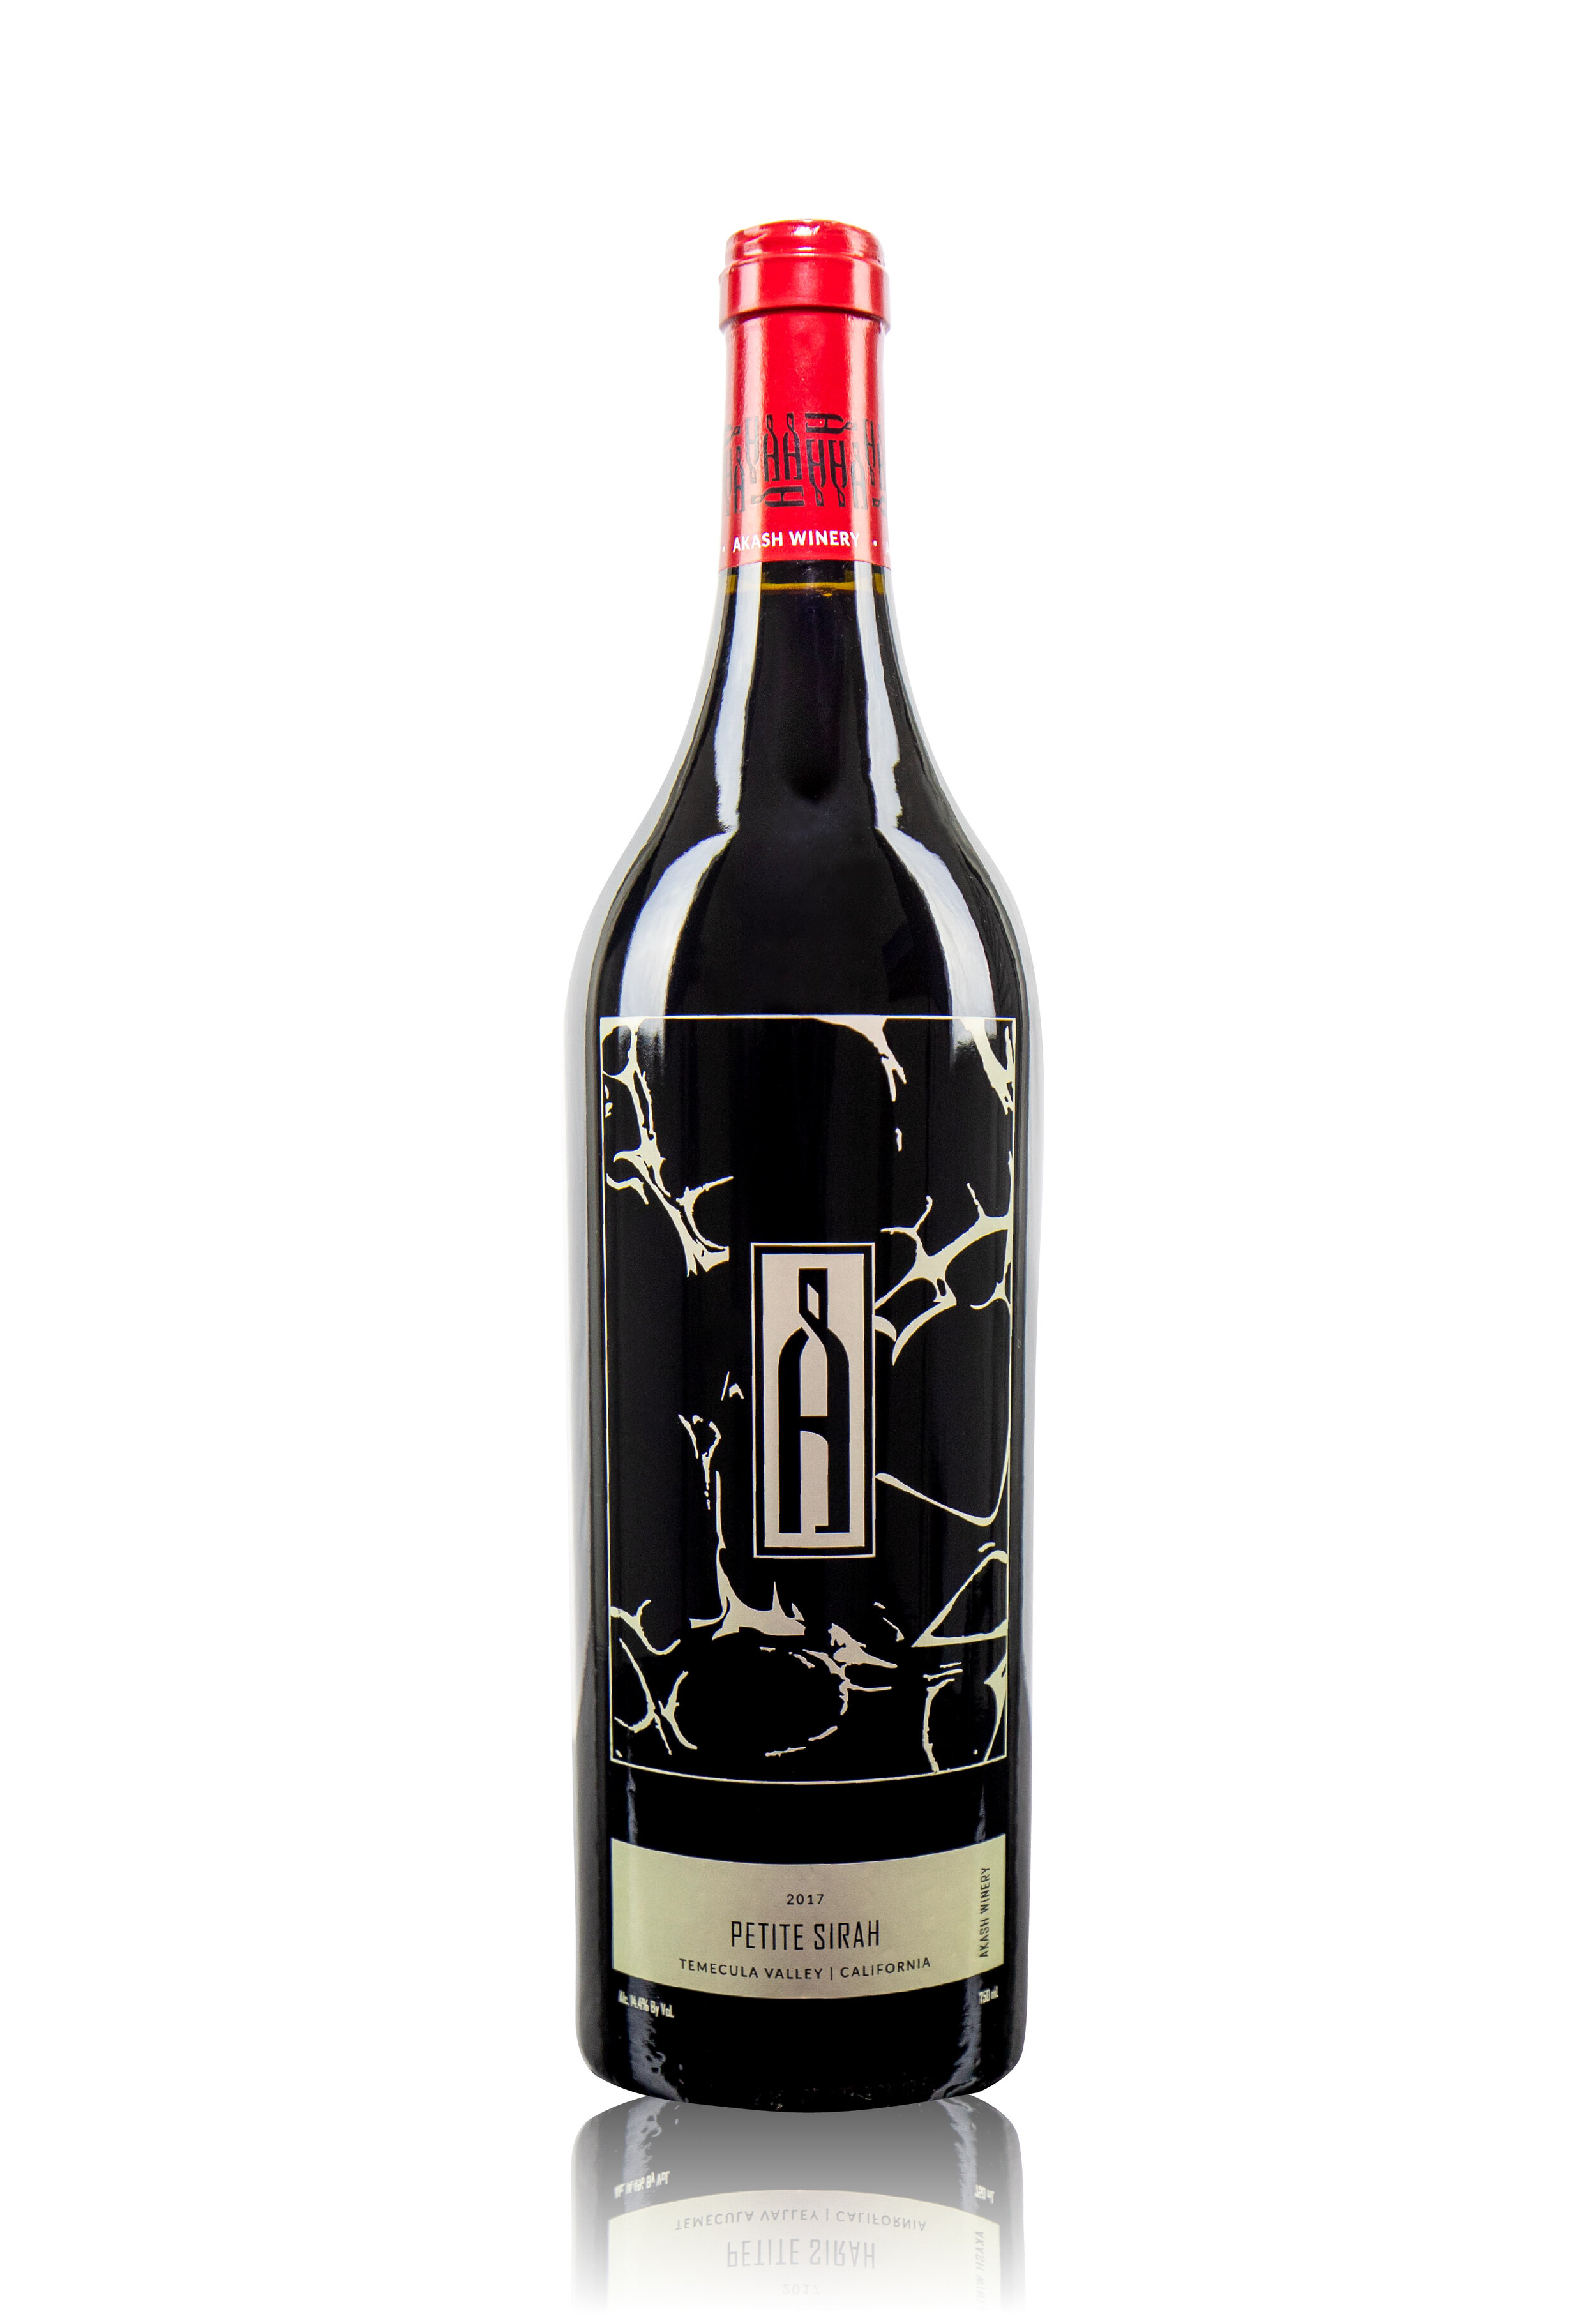 2017 Petite Sirah - Notes: A classic full bodied wine with aromas of butterscotch candy, caramel, dark berries, and black pepper. Rich berry and ripe plum fruit flavors combine perfectly with savory earthy, spice and clove characters.Vintage: 2017Alcohol: 14.40%Volume: 750 ml